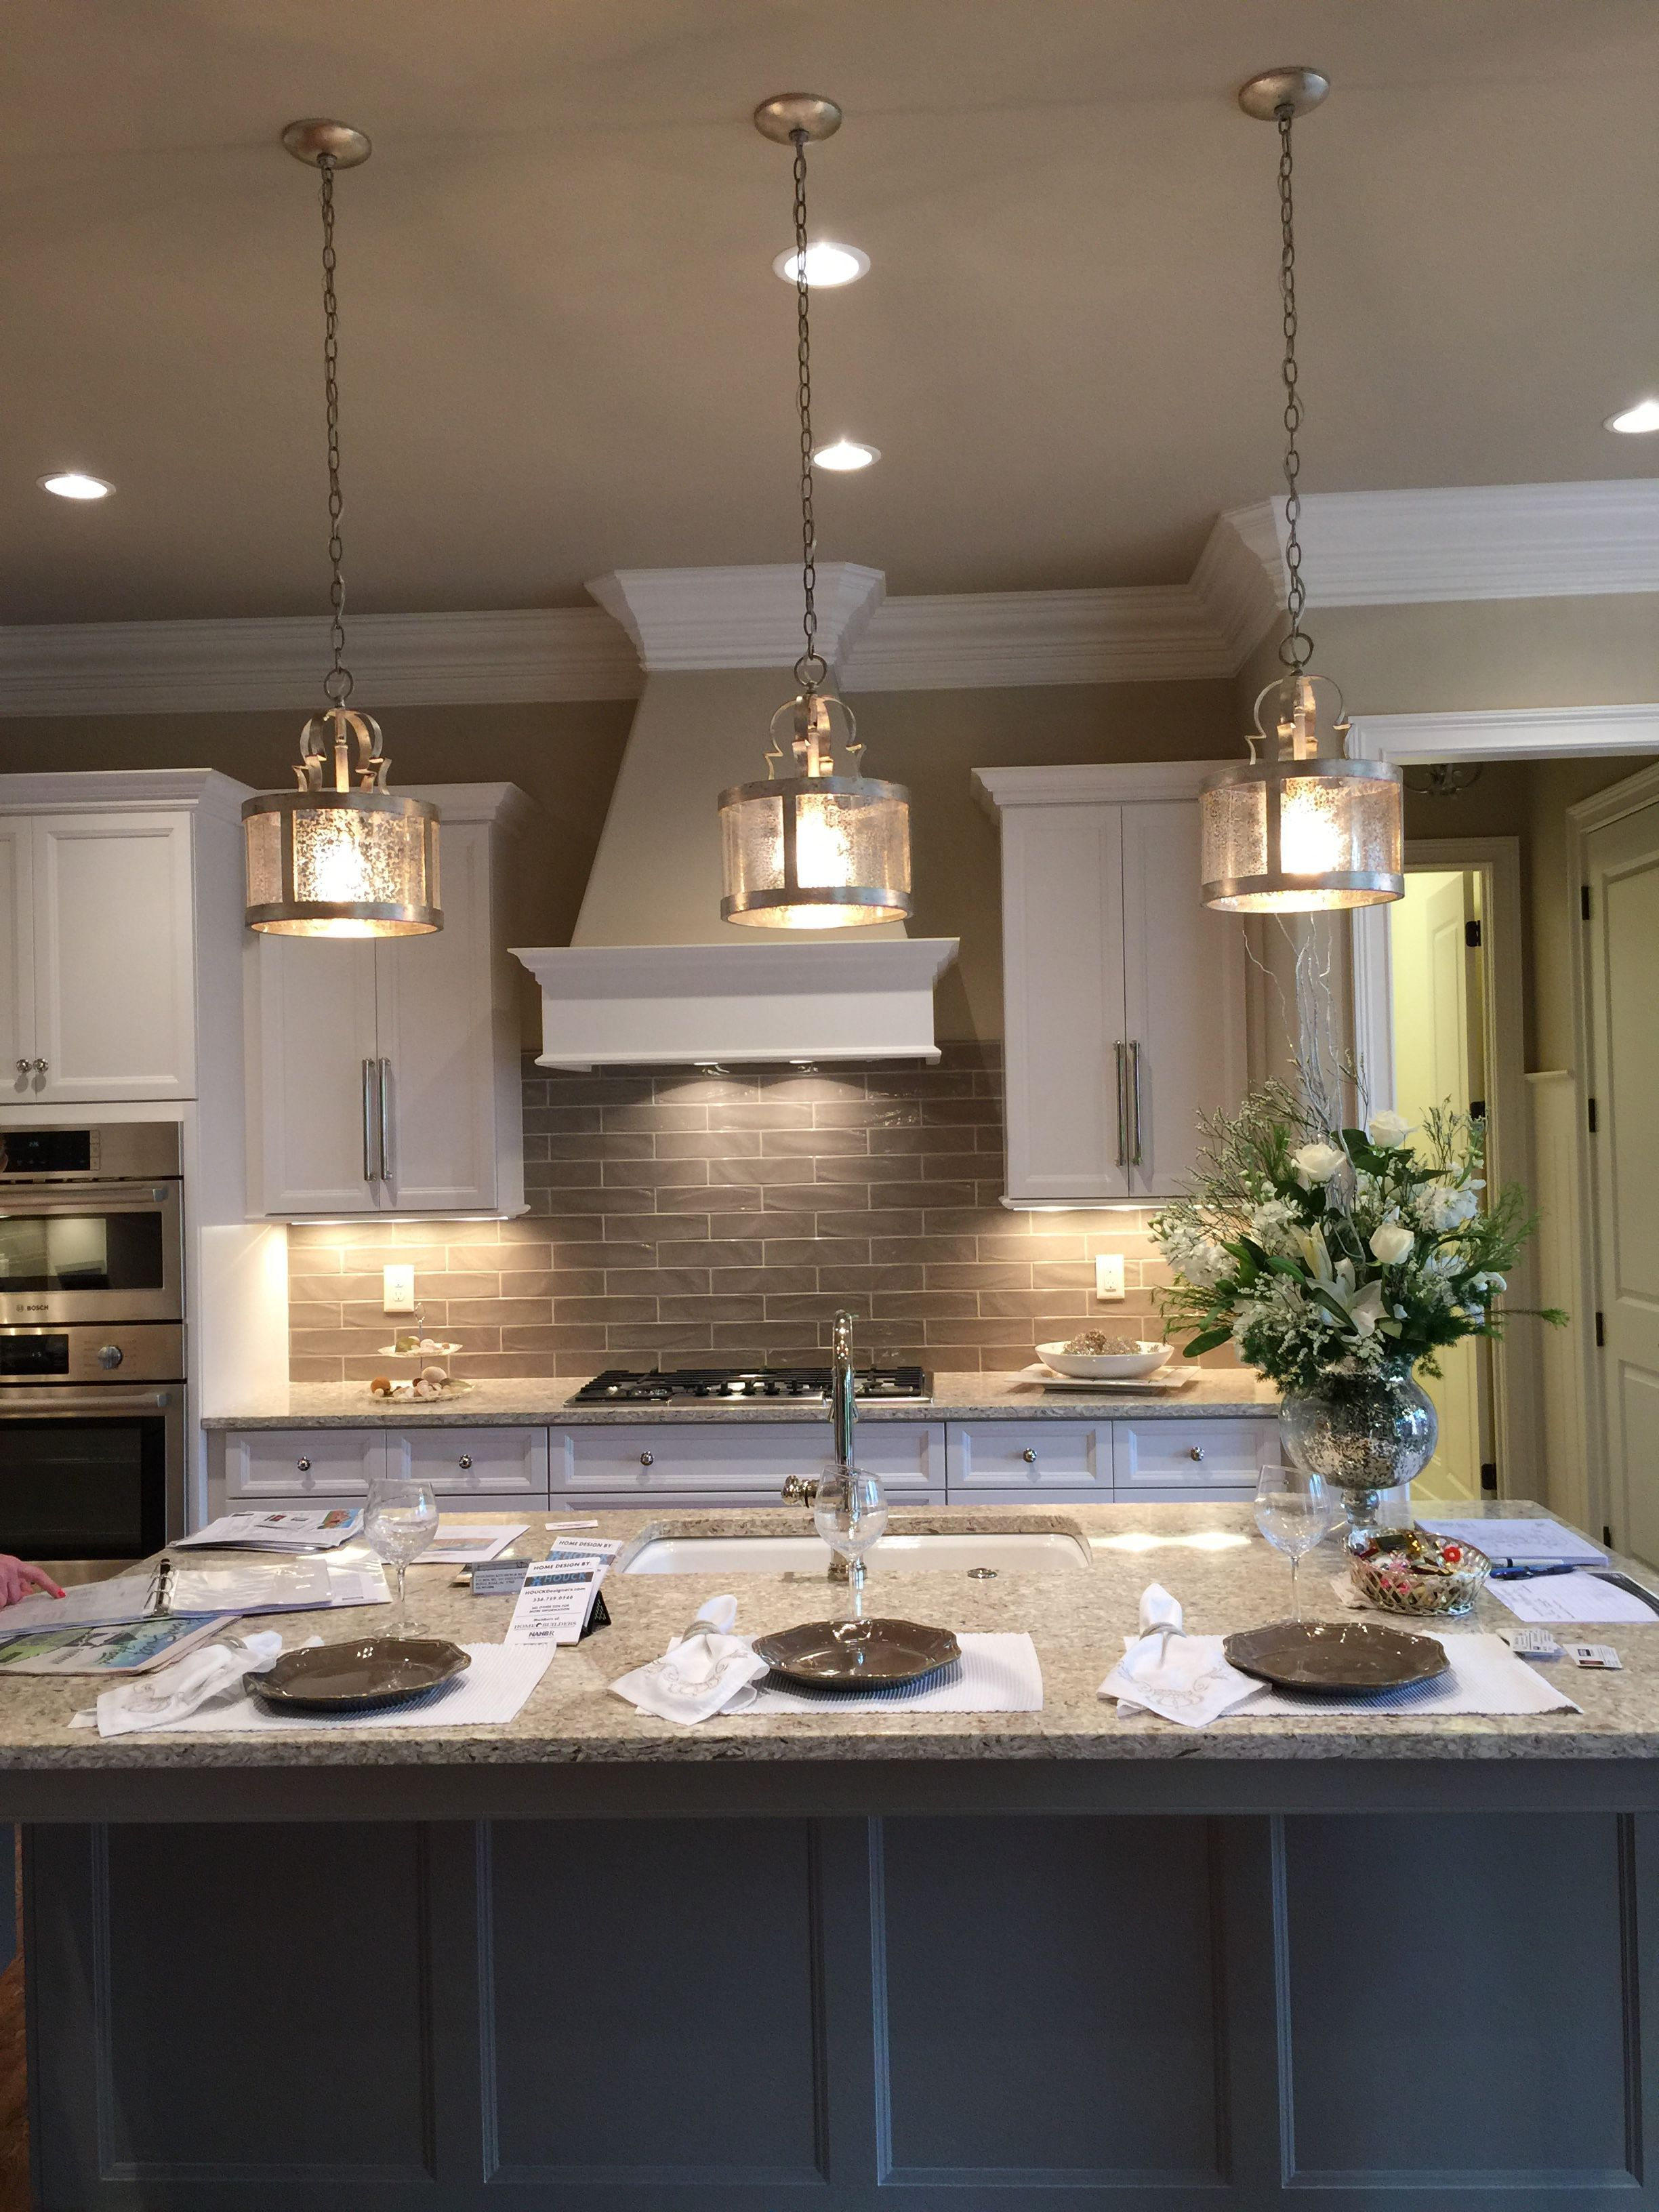 7+ Best Kitchen Lighting Ideas Modern Light Fixtures for